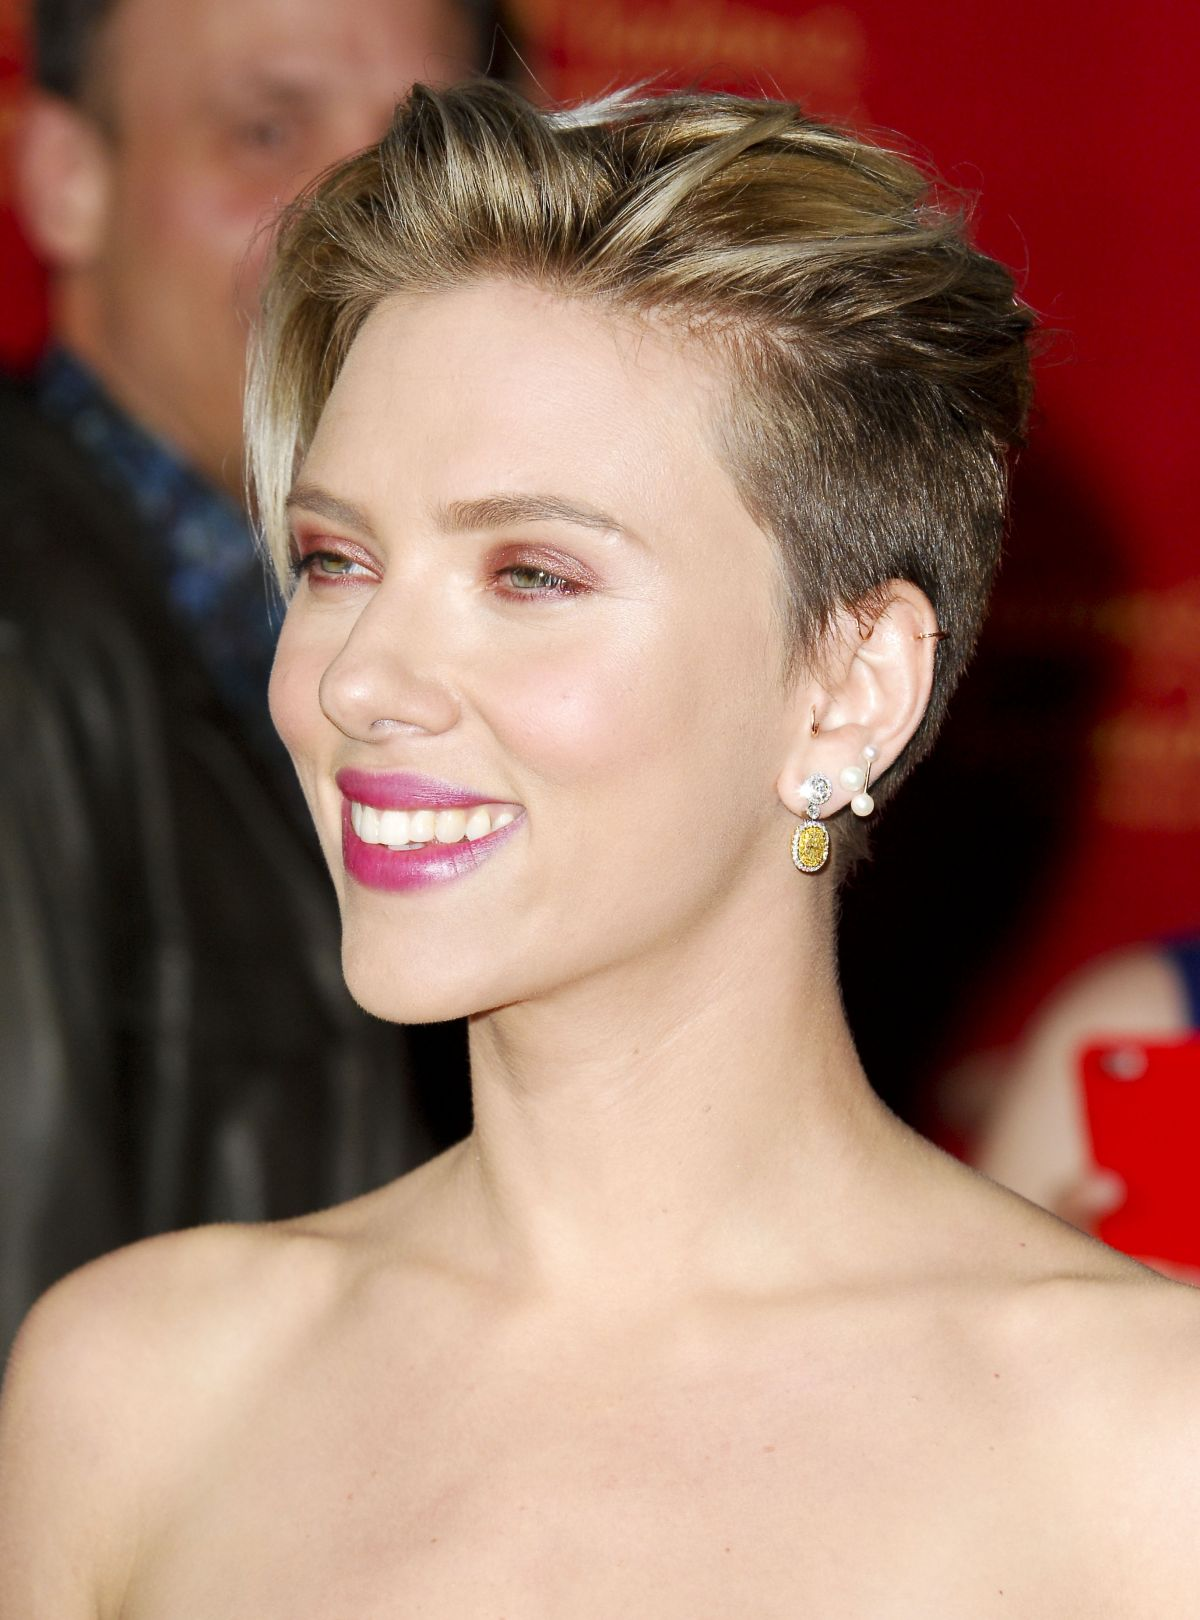 SCARLETT JOHANSSON at Avengers: Age of Ultron Premiere in Hollywood ...